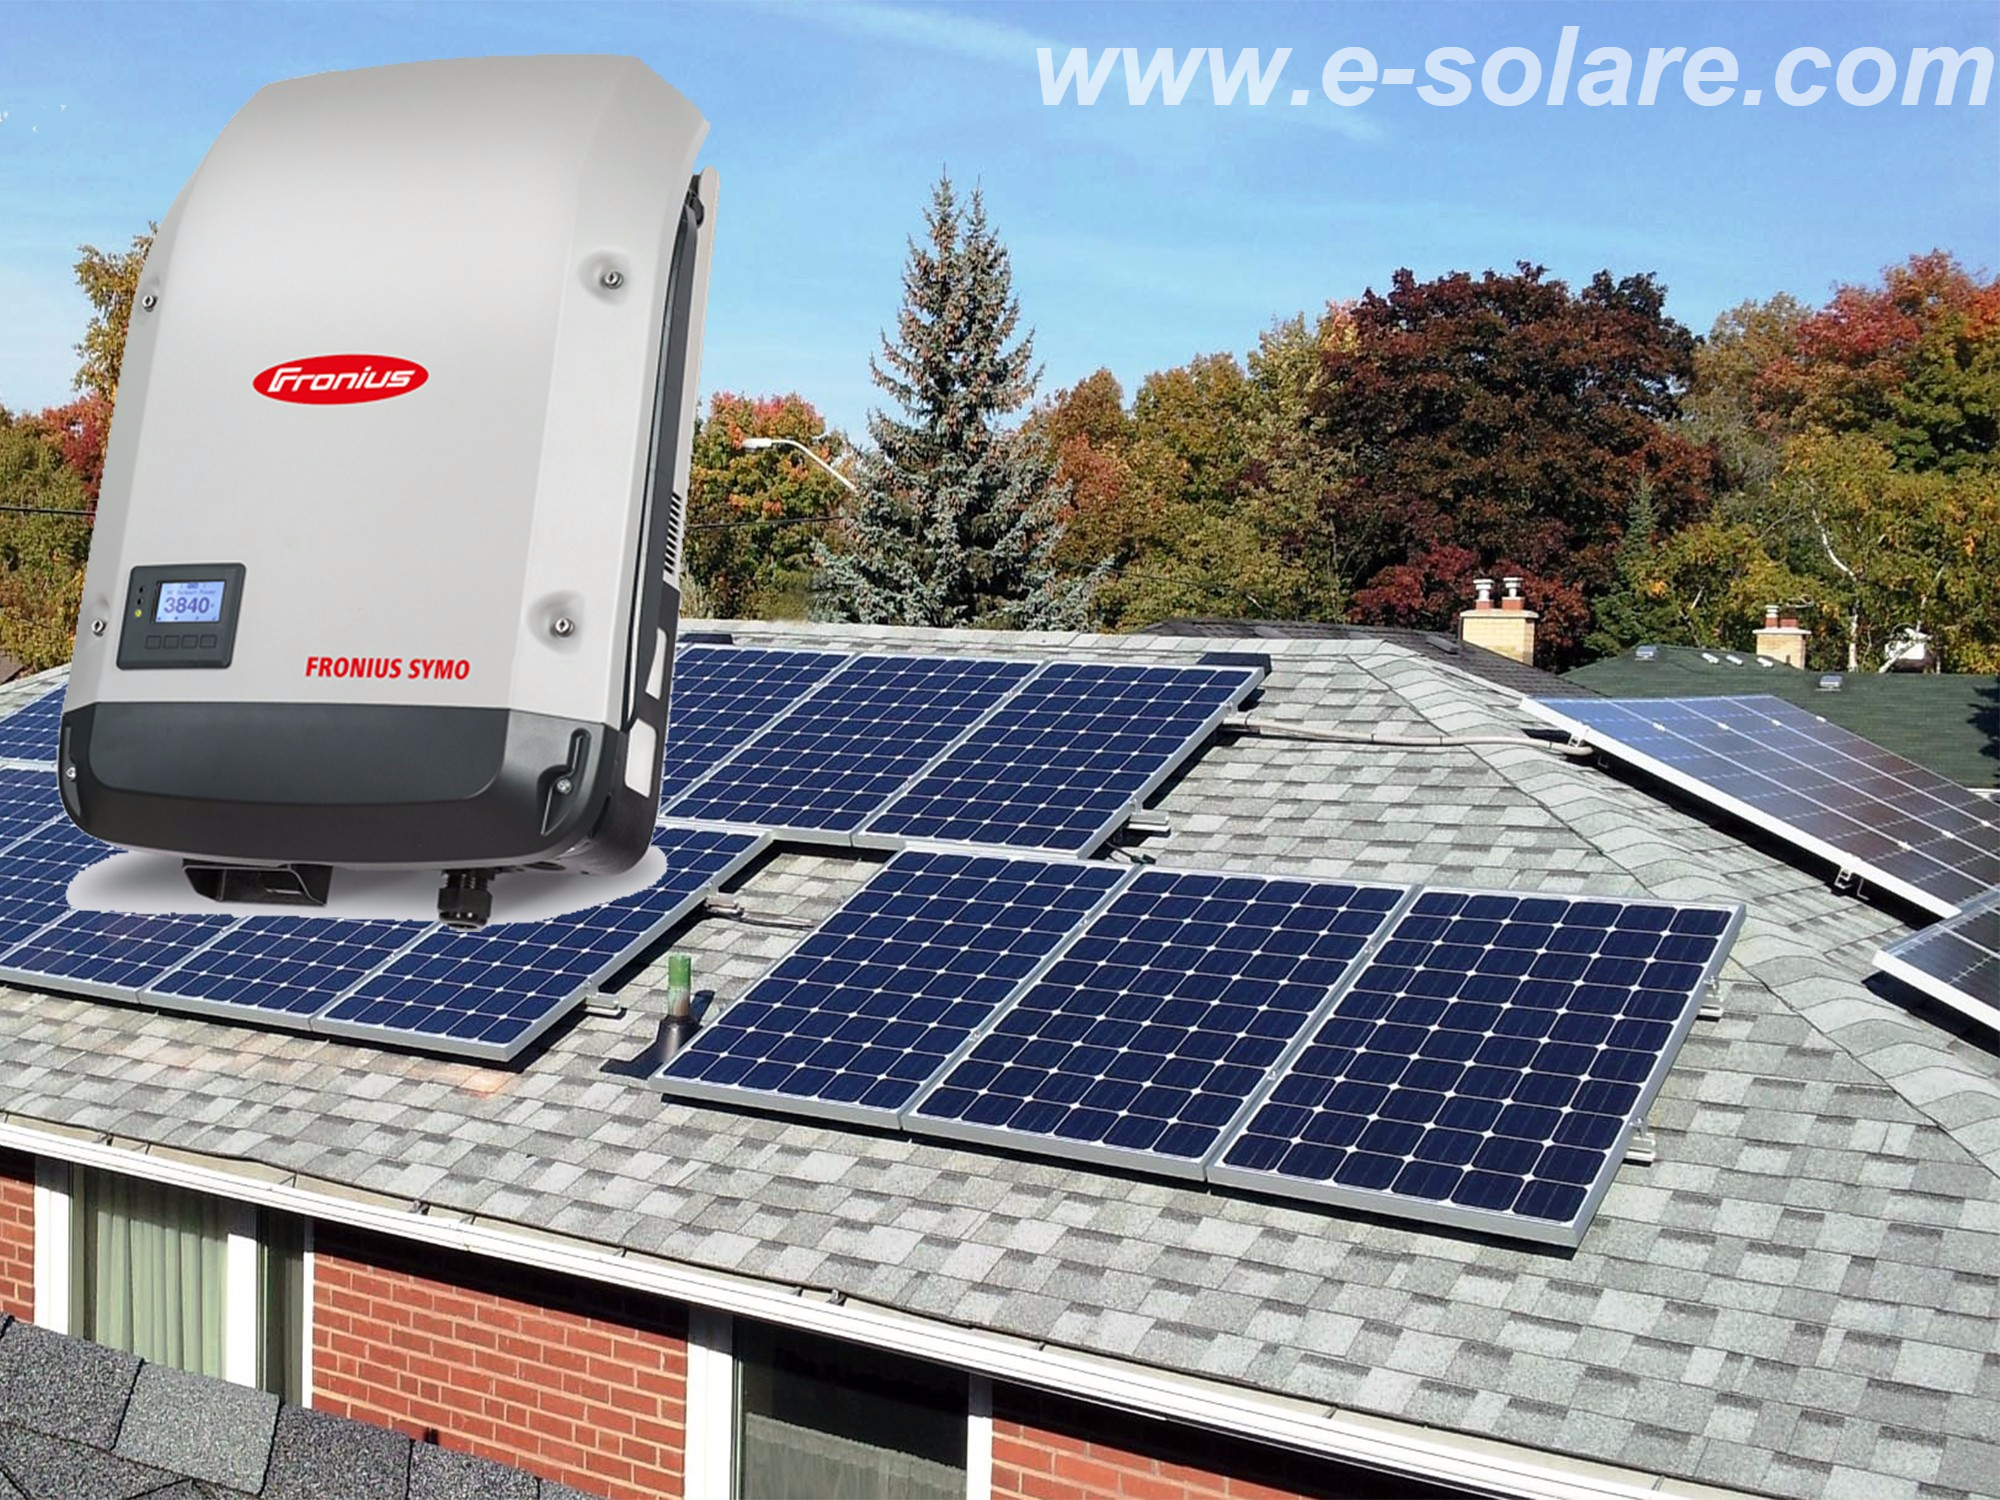 photovoltaic kit three phases on grid kwp fronius. Black Bedroom Furniture Sets. Home Design Ideas